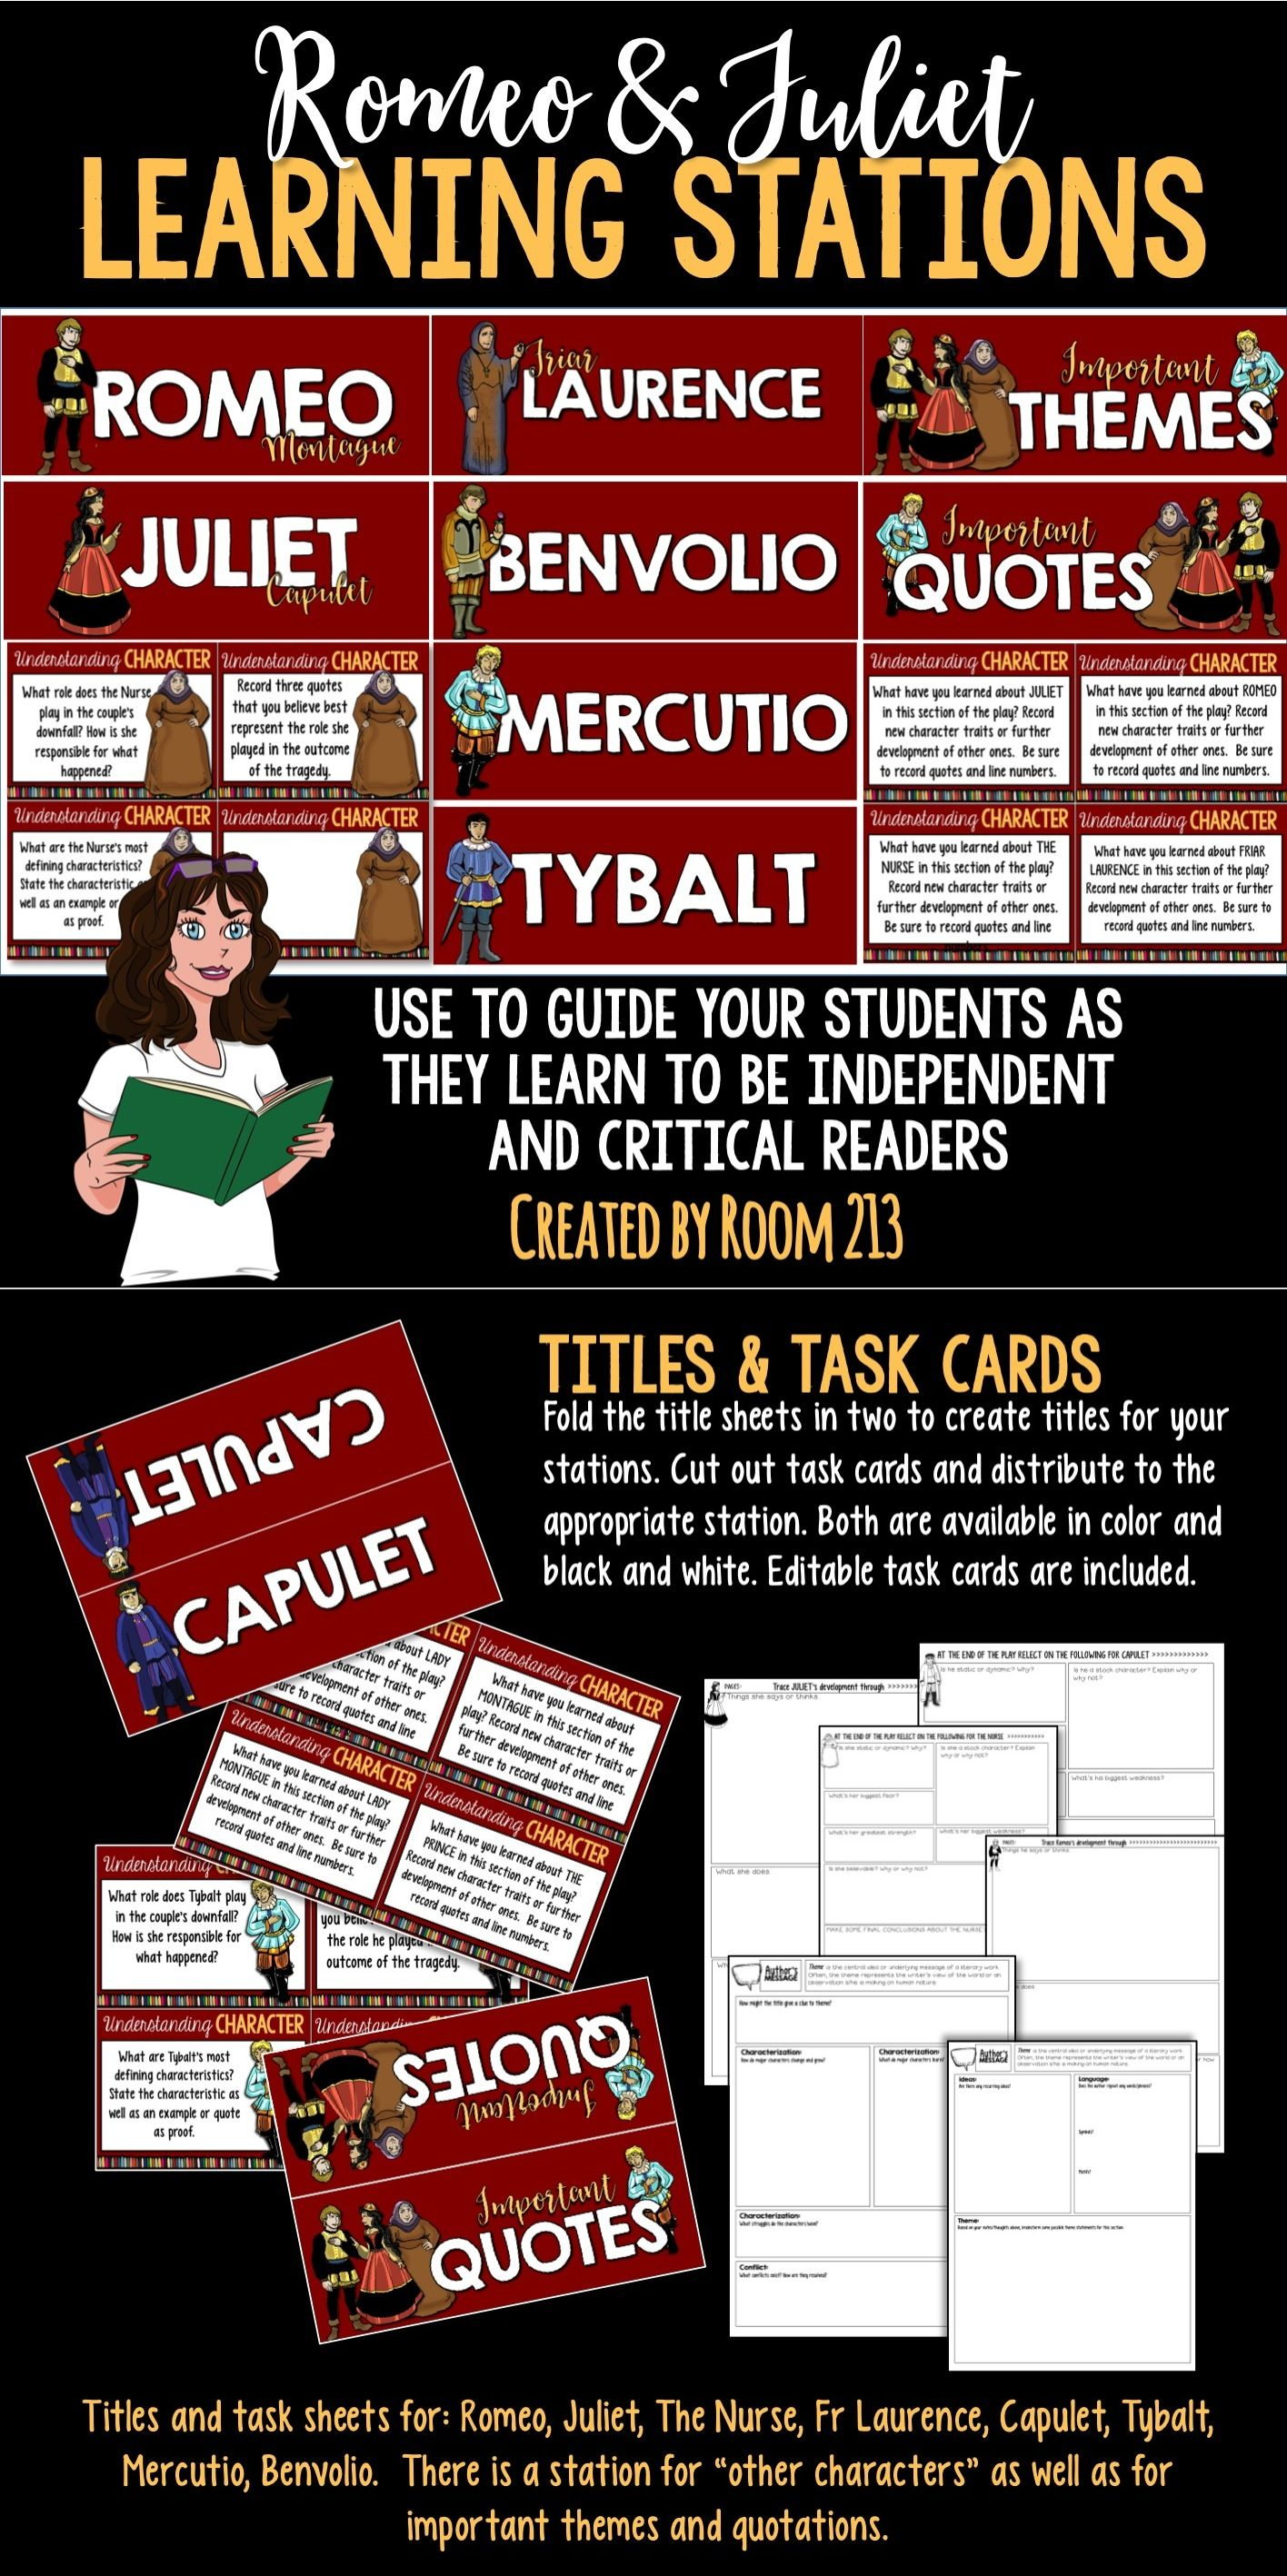 romeo and juliet learning stations student romeo and juliet and romeo juiet these stations focus on character and theme development and help your students become more independent in their analysis and critical